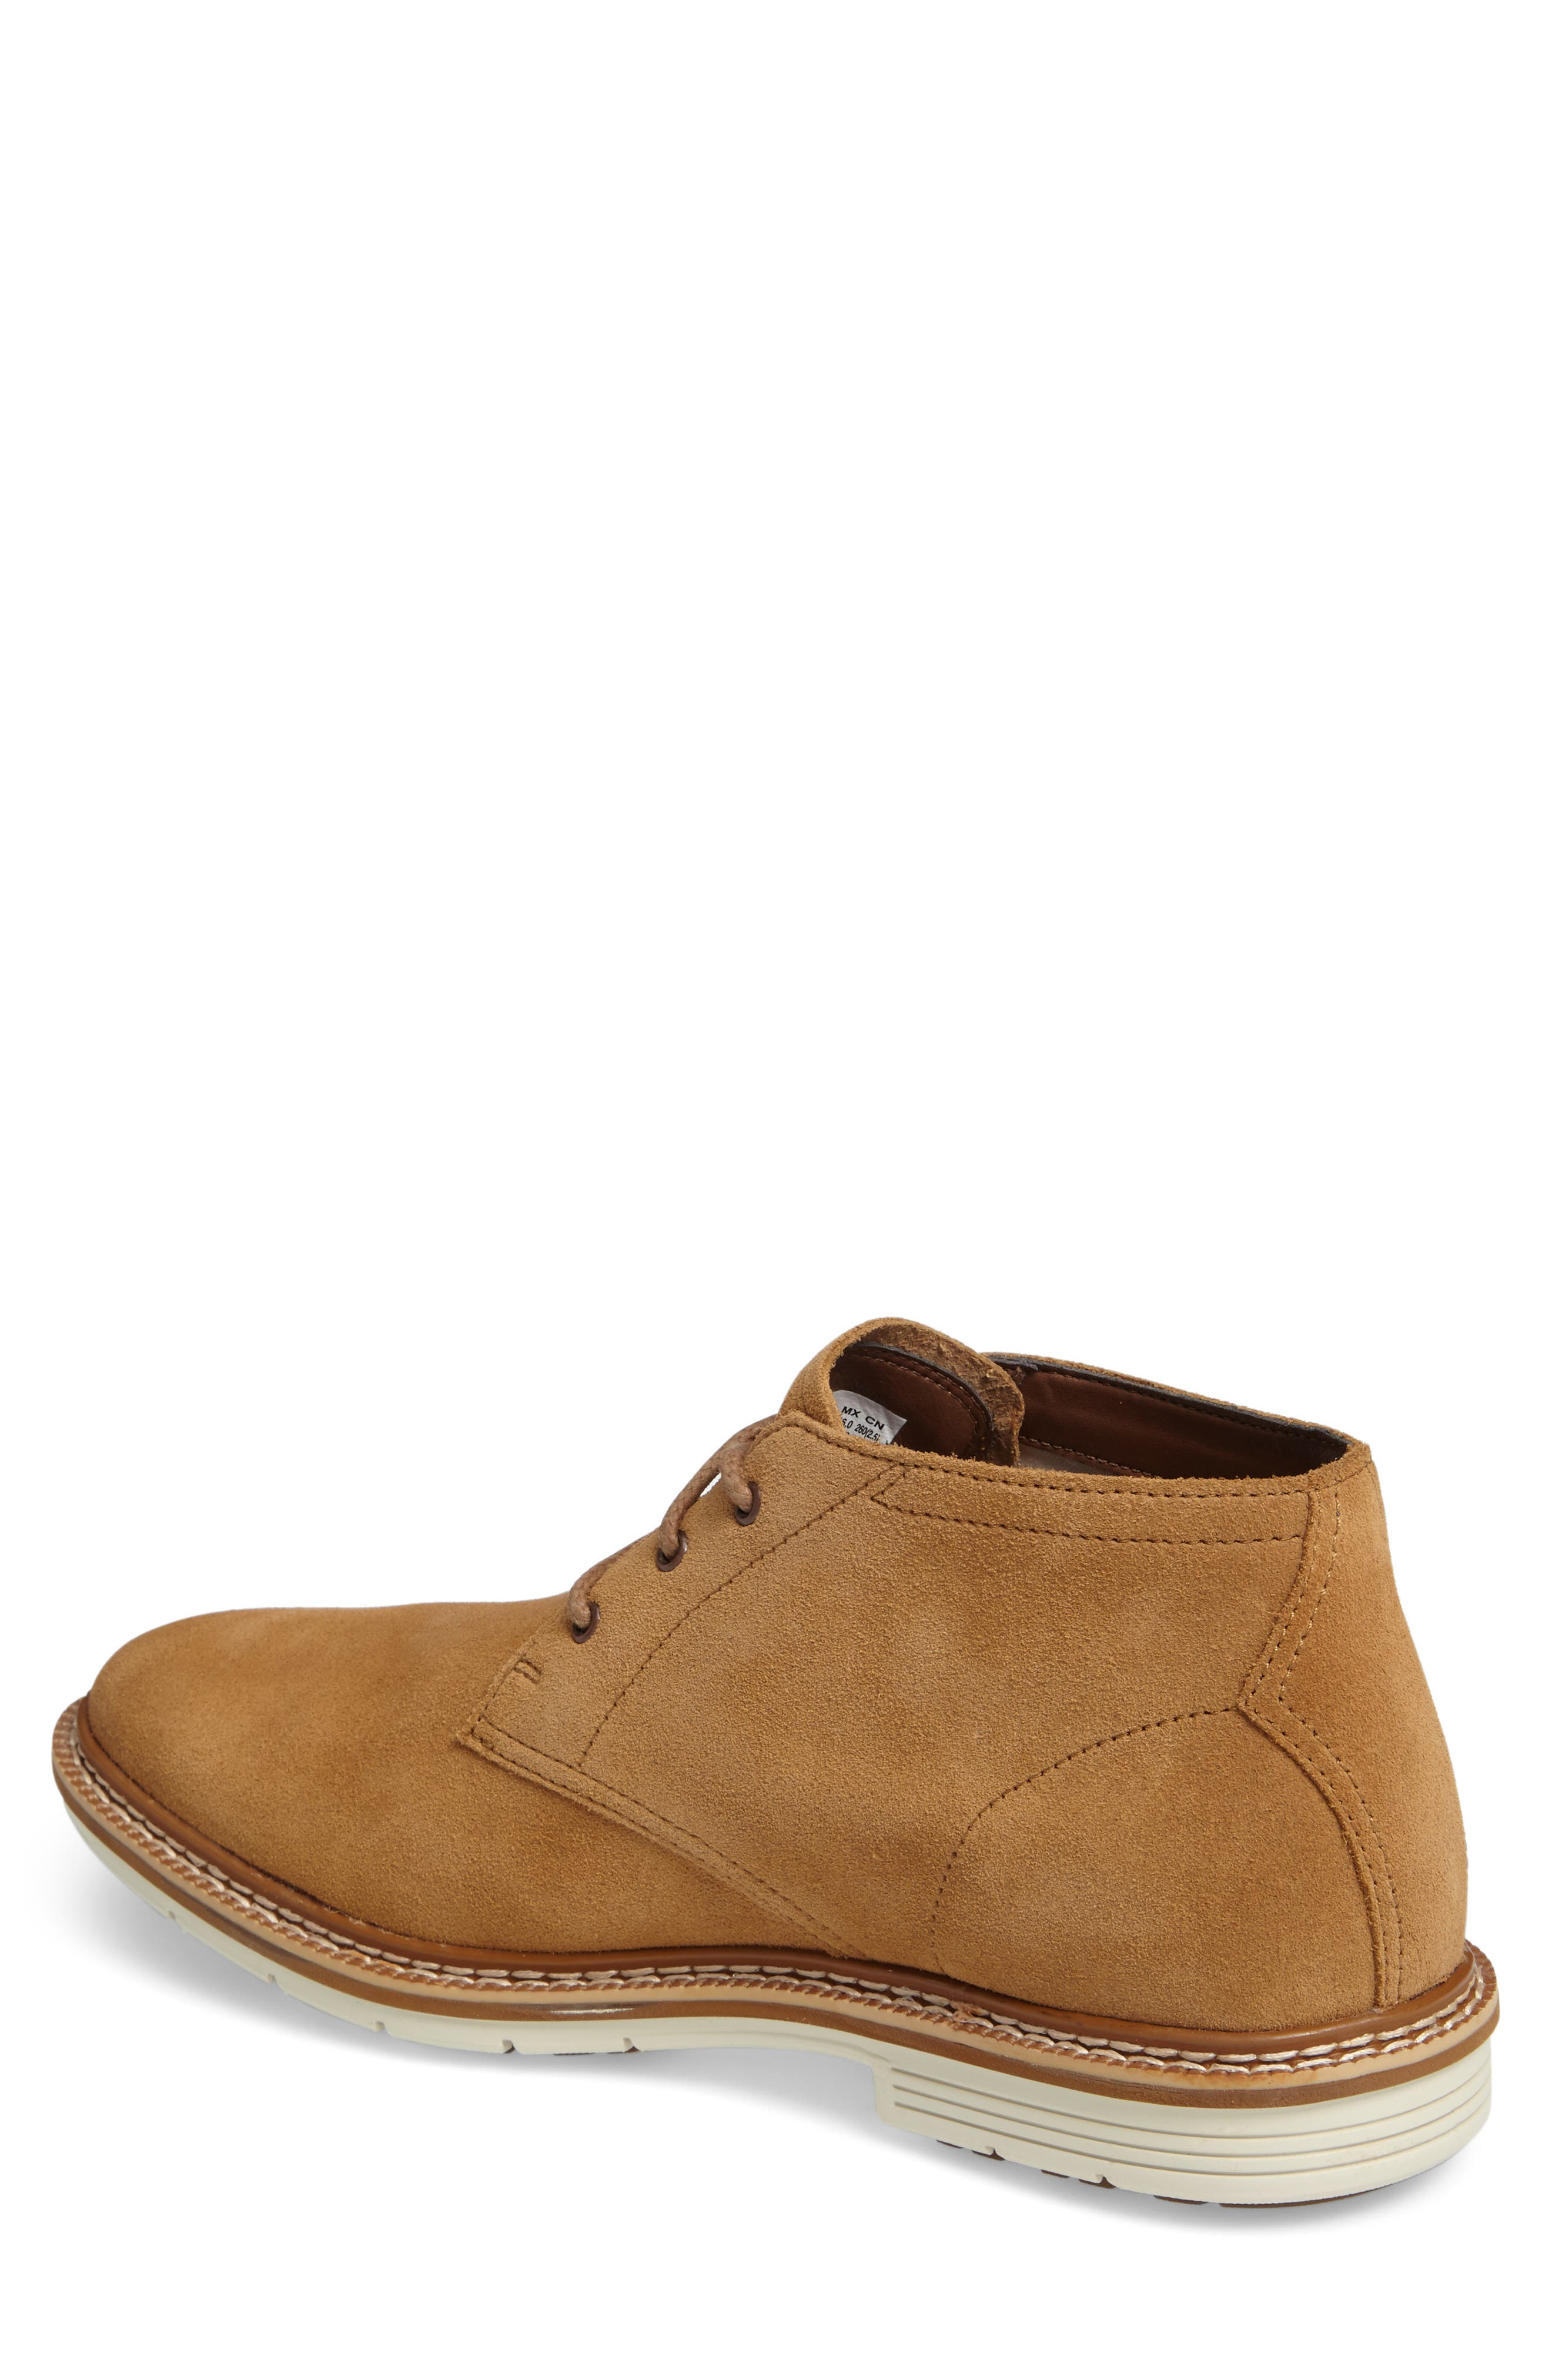 Naples Trail Chukka Boot,                             Alternate thumbnail 3, color,                             Rubber Suede